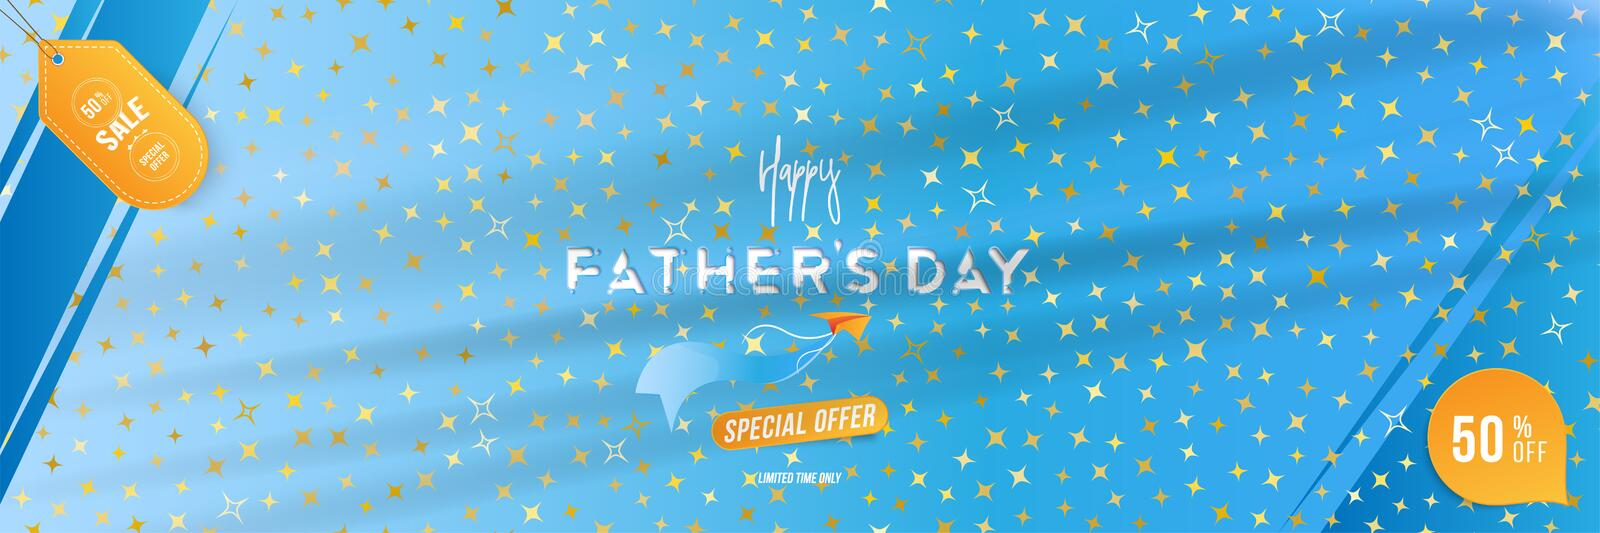 Happy Father`s Day. Banner with Mega Sale 50 with special offer and light effects on background original font and stars stock illustration